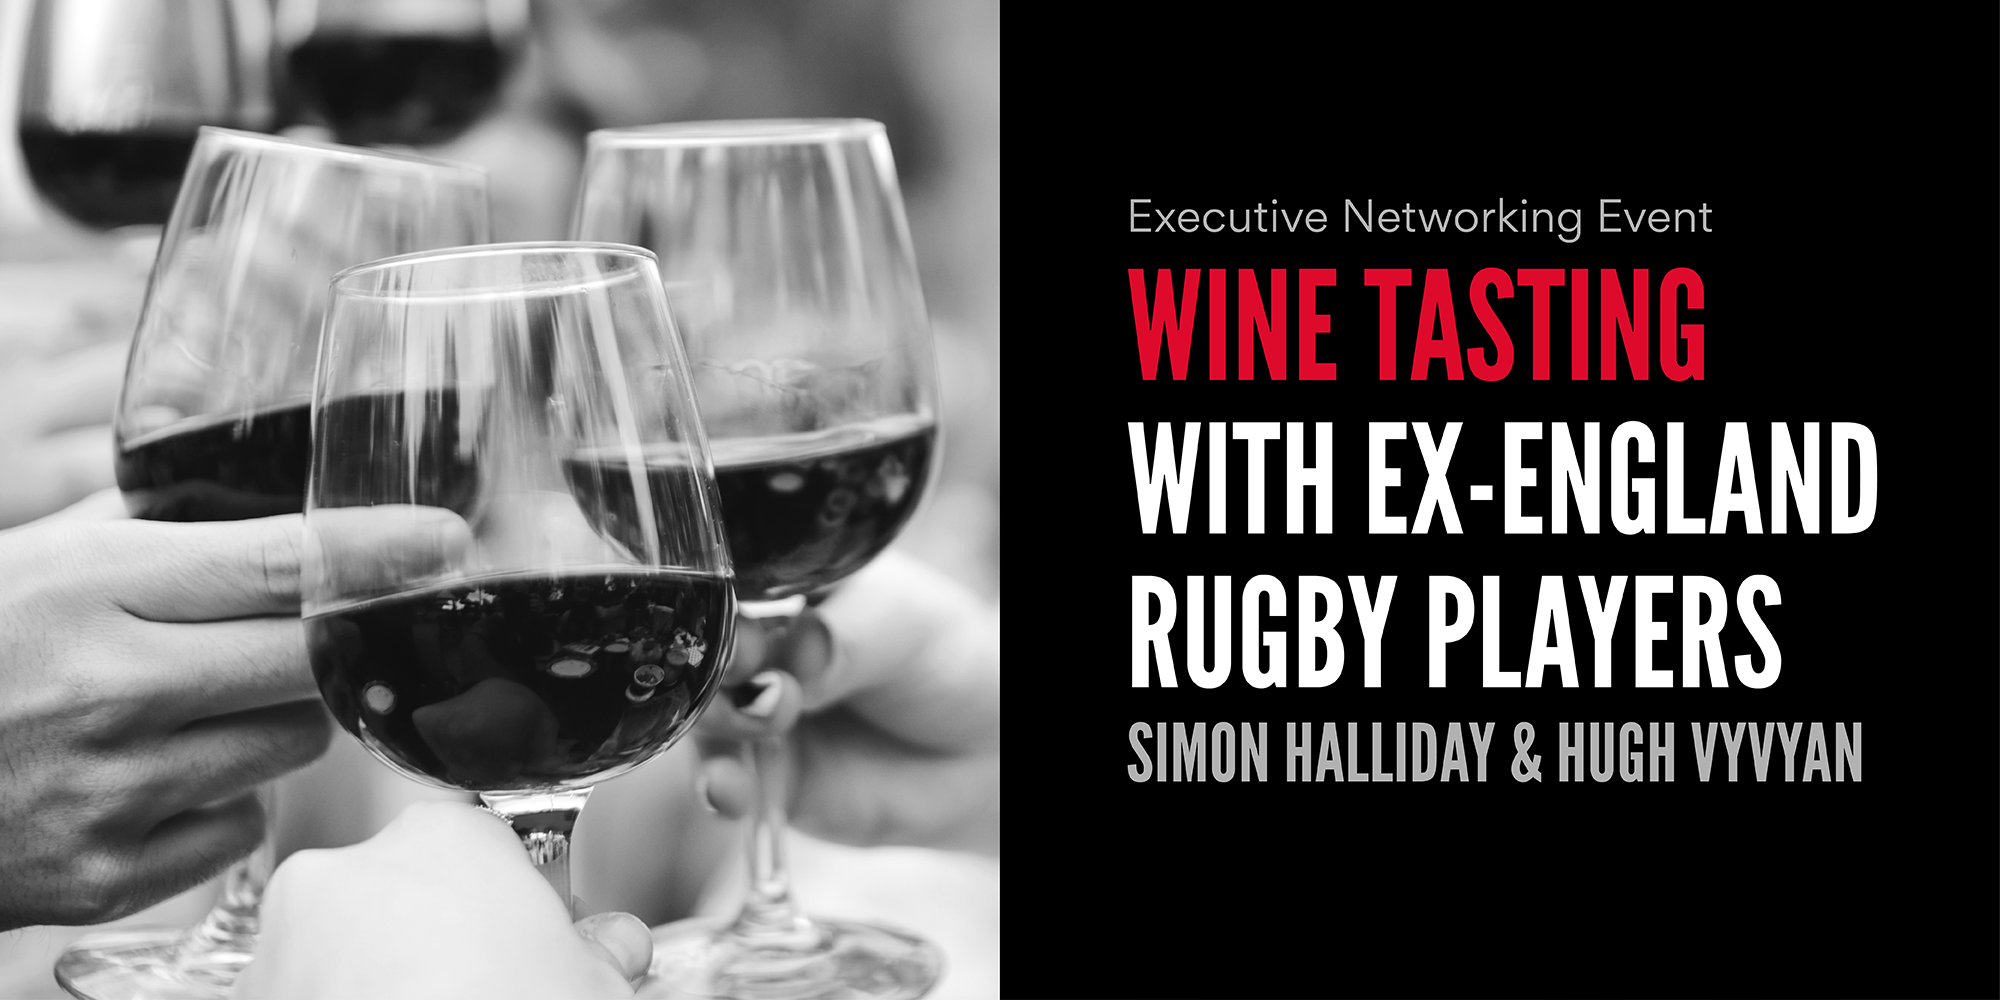 Wine tasting with ex-England Rugby Players